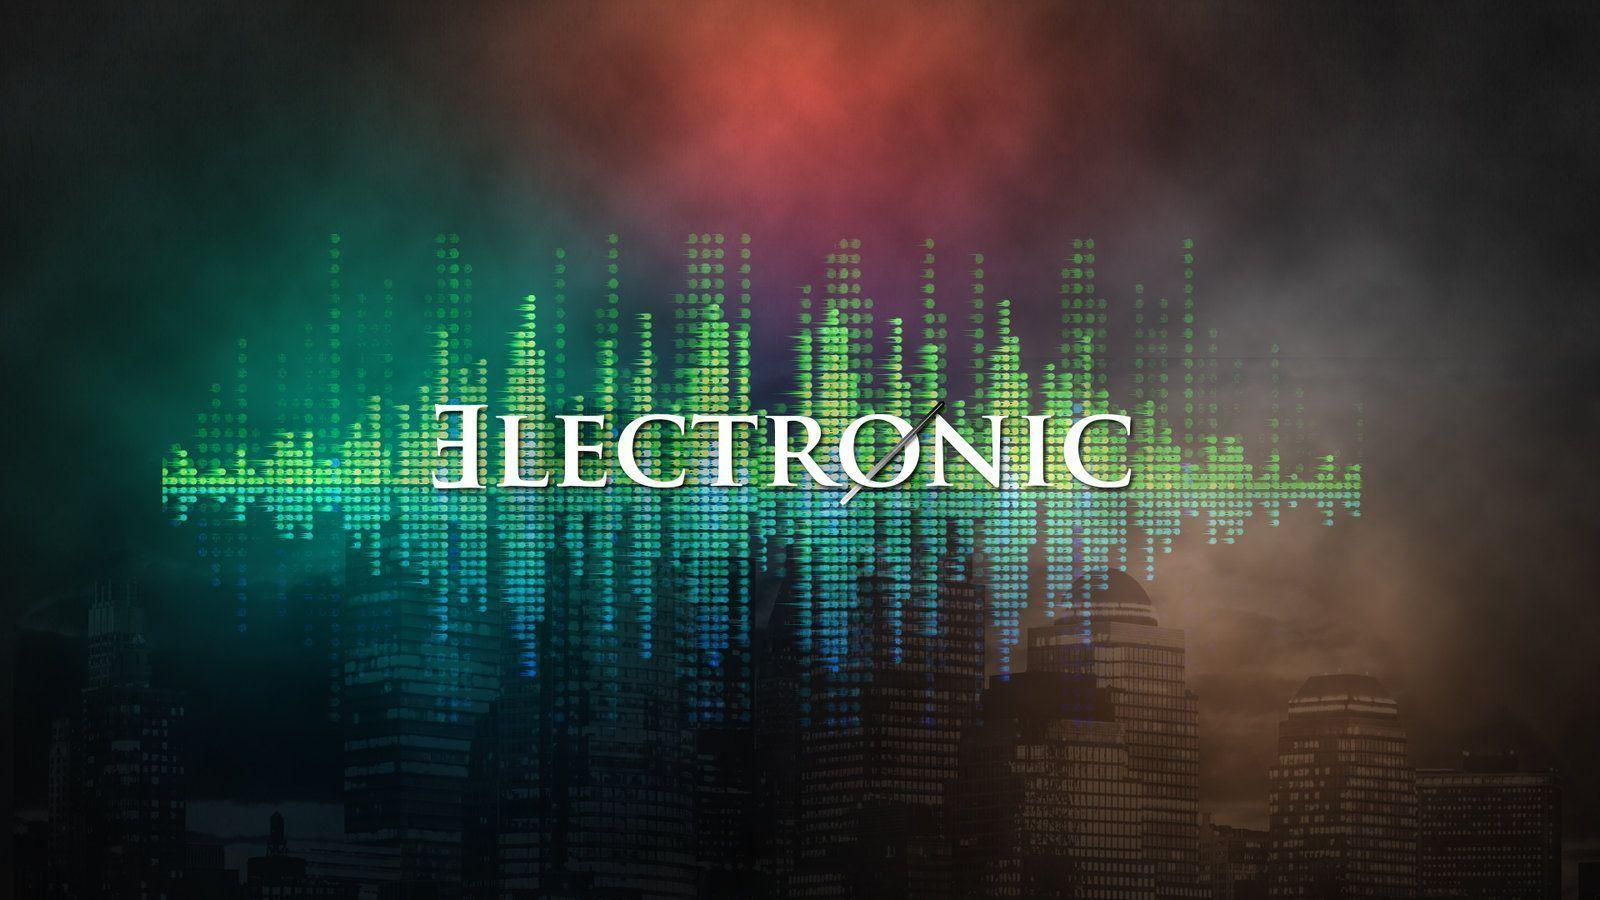 Electronic Music Wallpapers  Wallpaper Cave